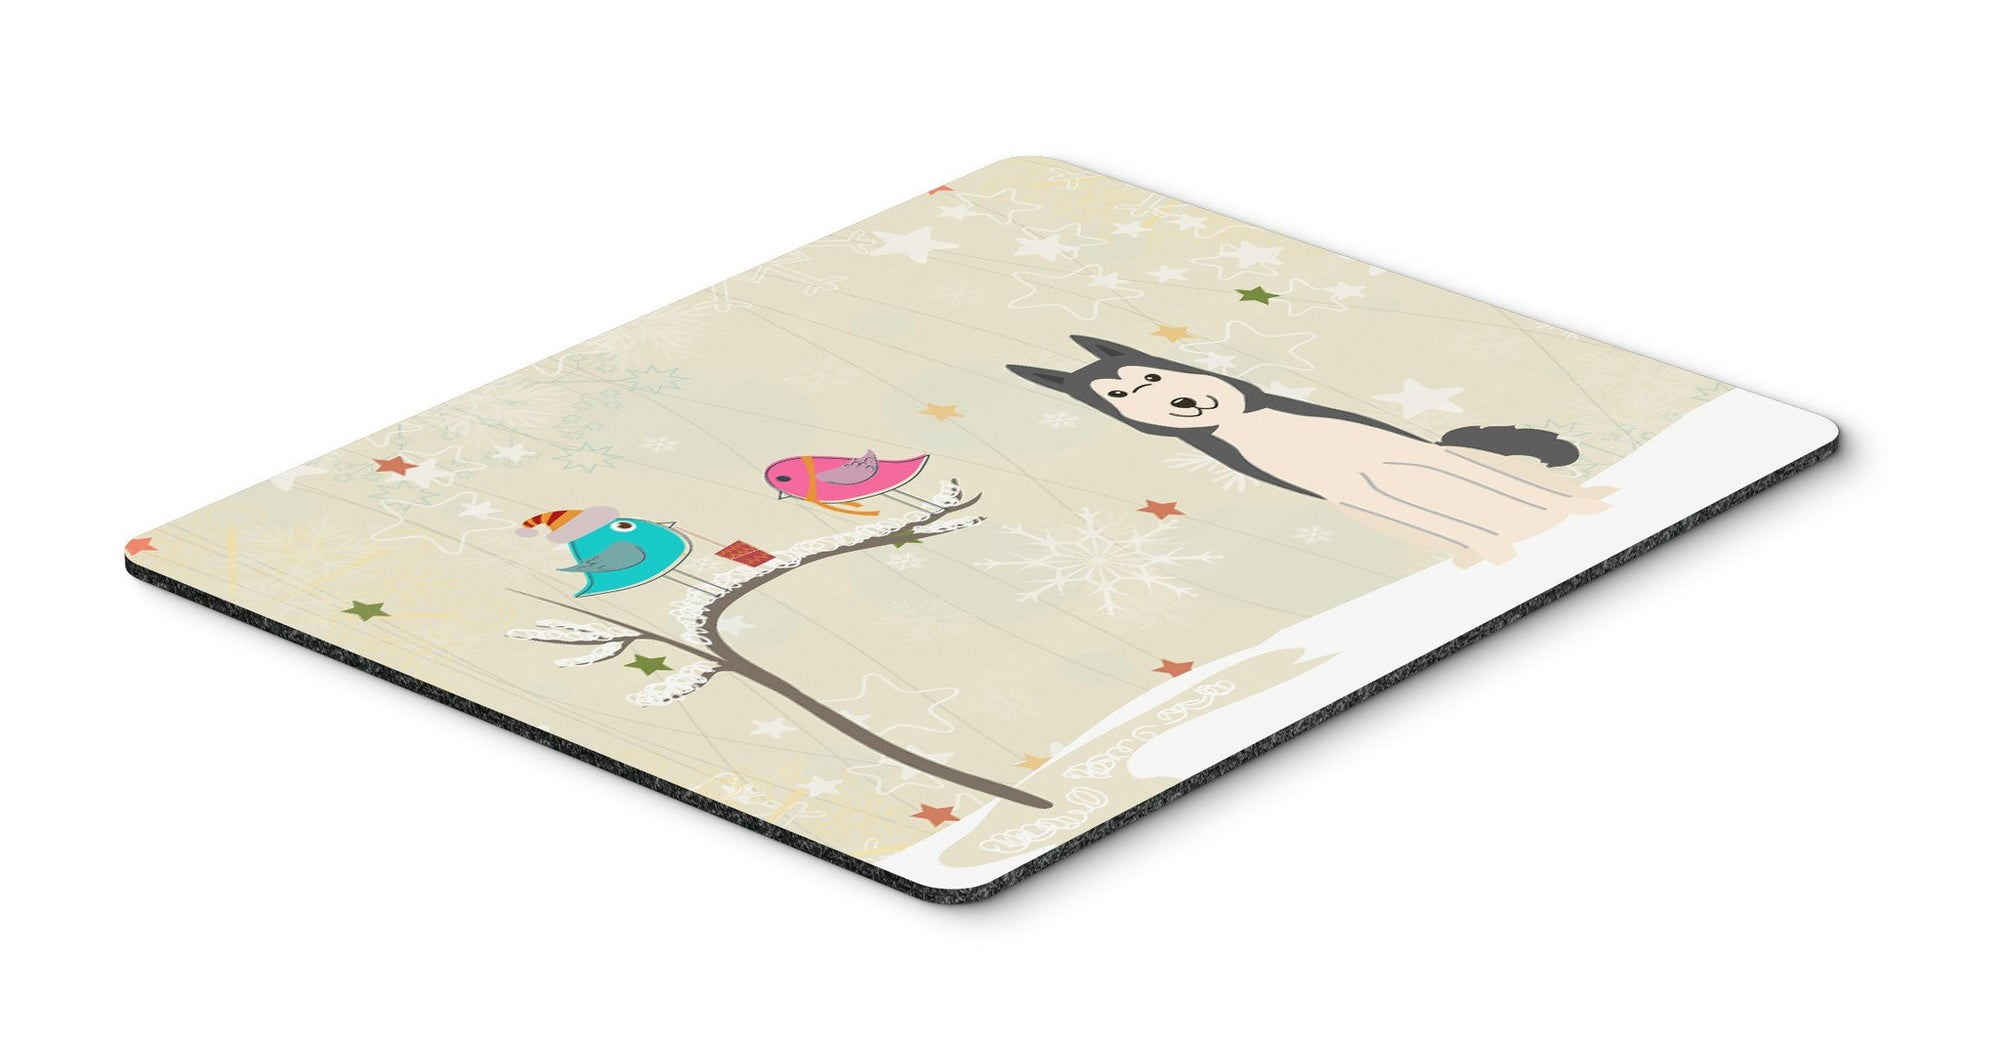 Christmas Presents between Friends West Siberian Laika Spitz Mouse Pad, Hot Pad or Trivet BB2497MP - the-store.com